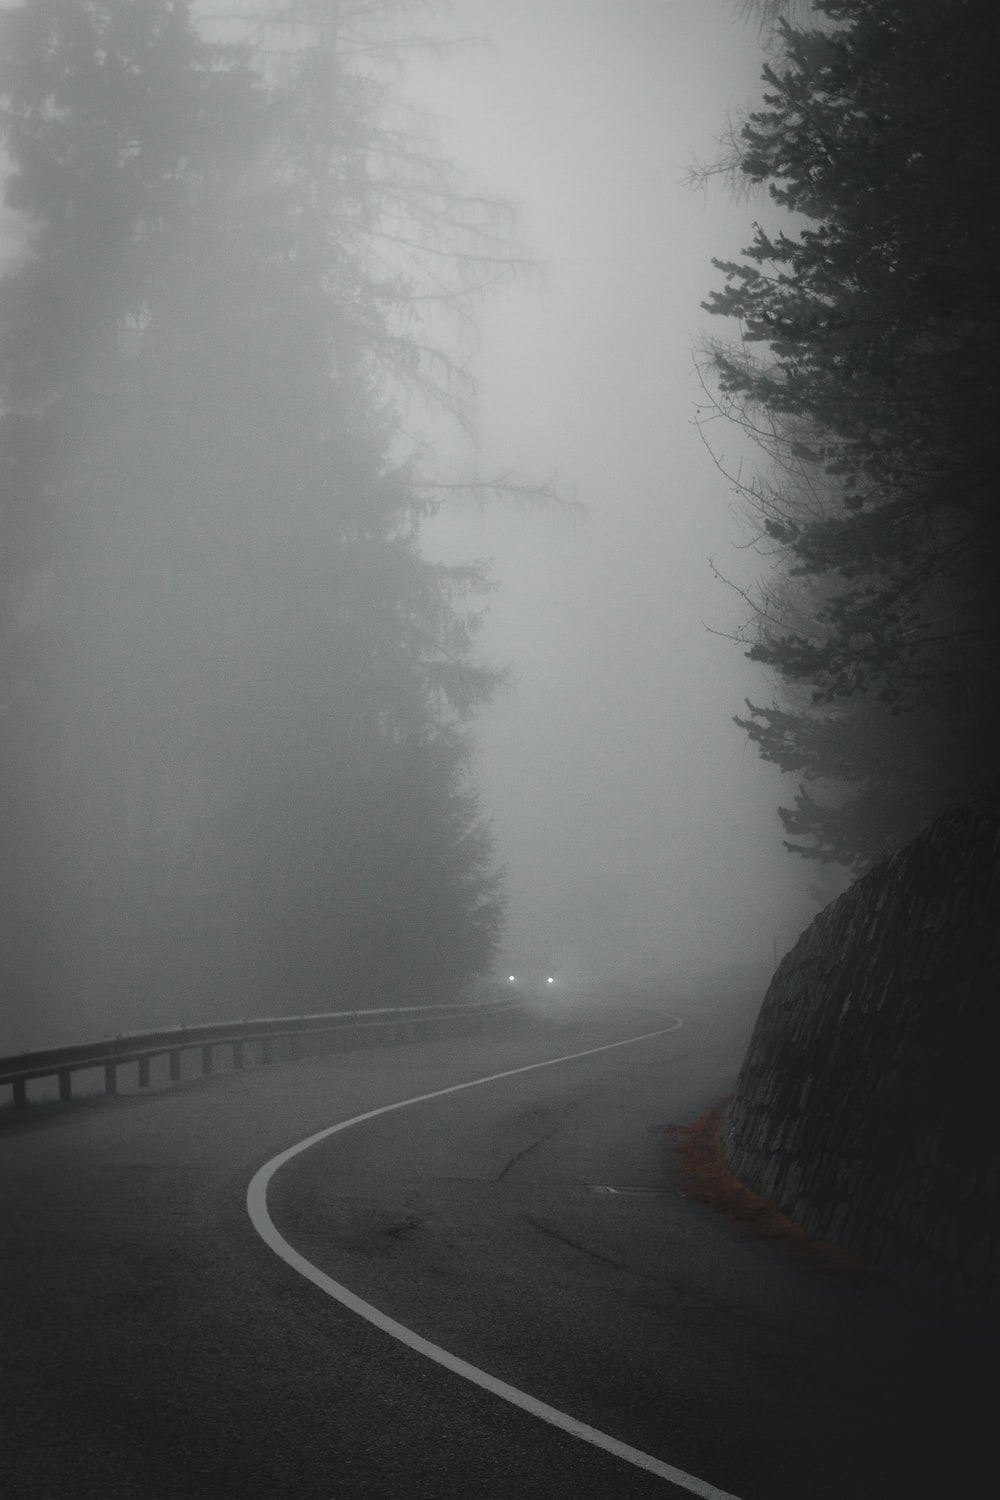 vehicle with turned on headlights near curve during foggy road